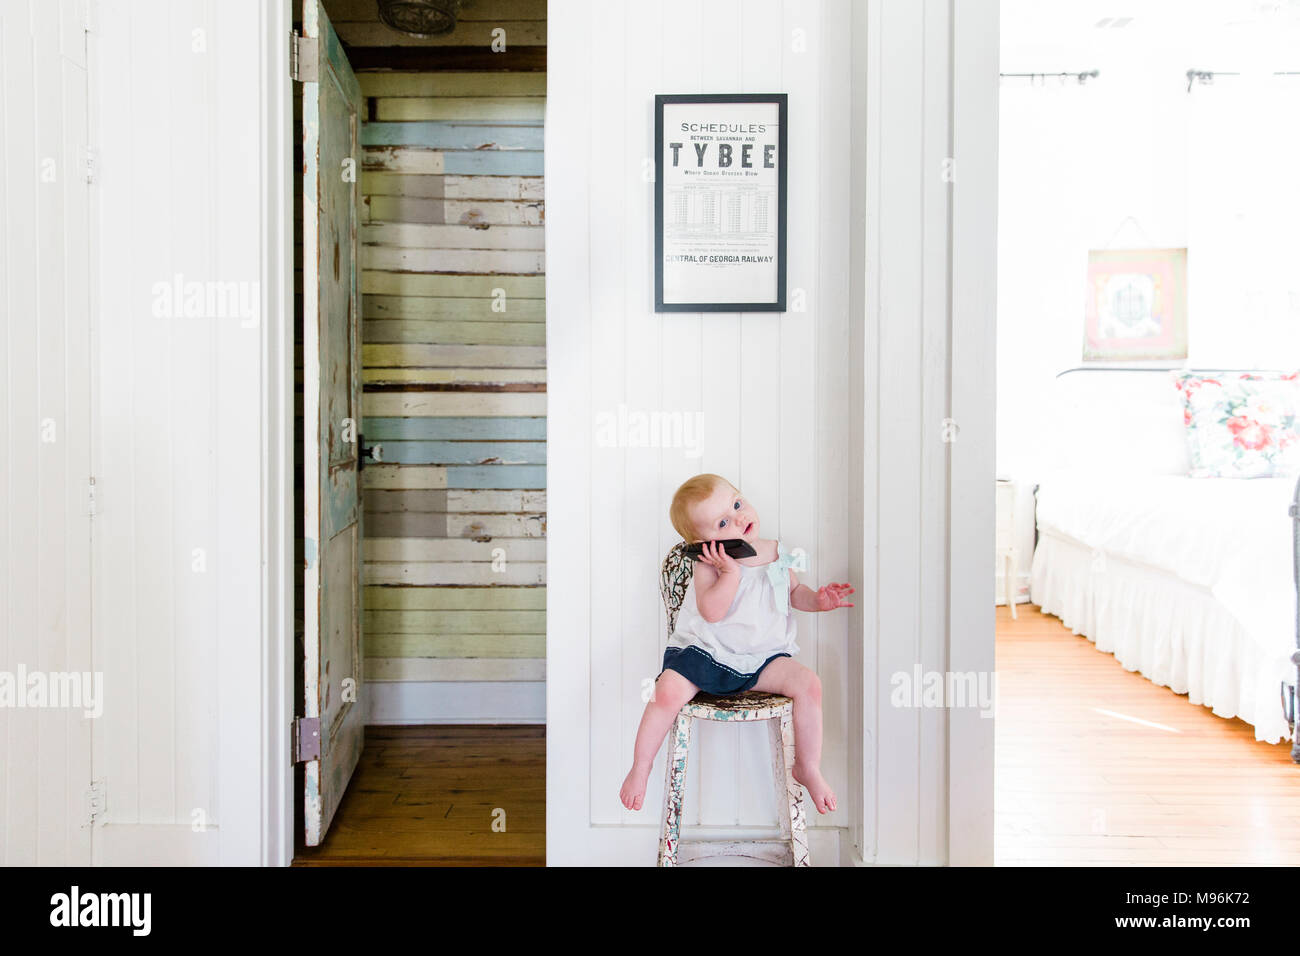 Baby on phone sitting on chair - Stock Image